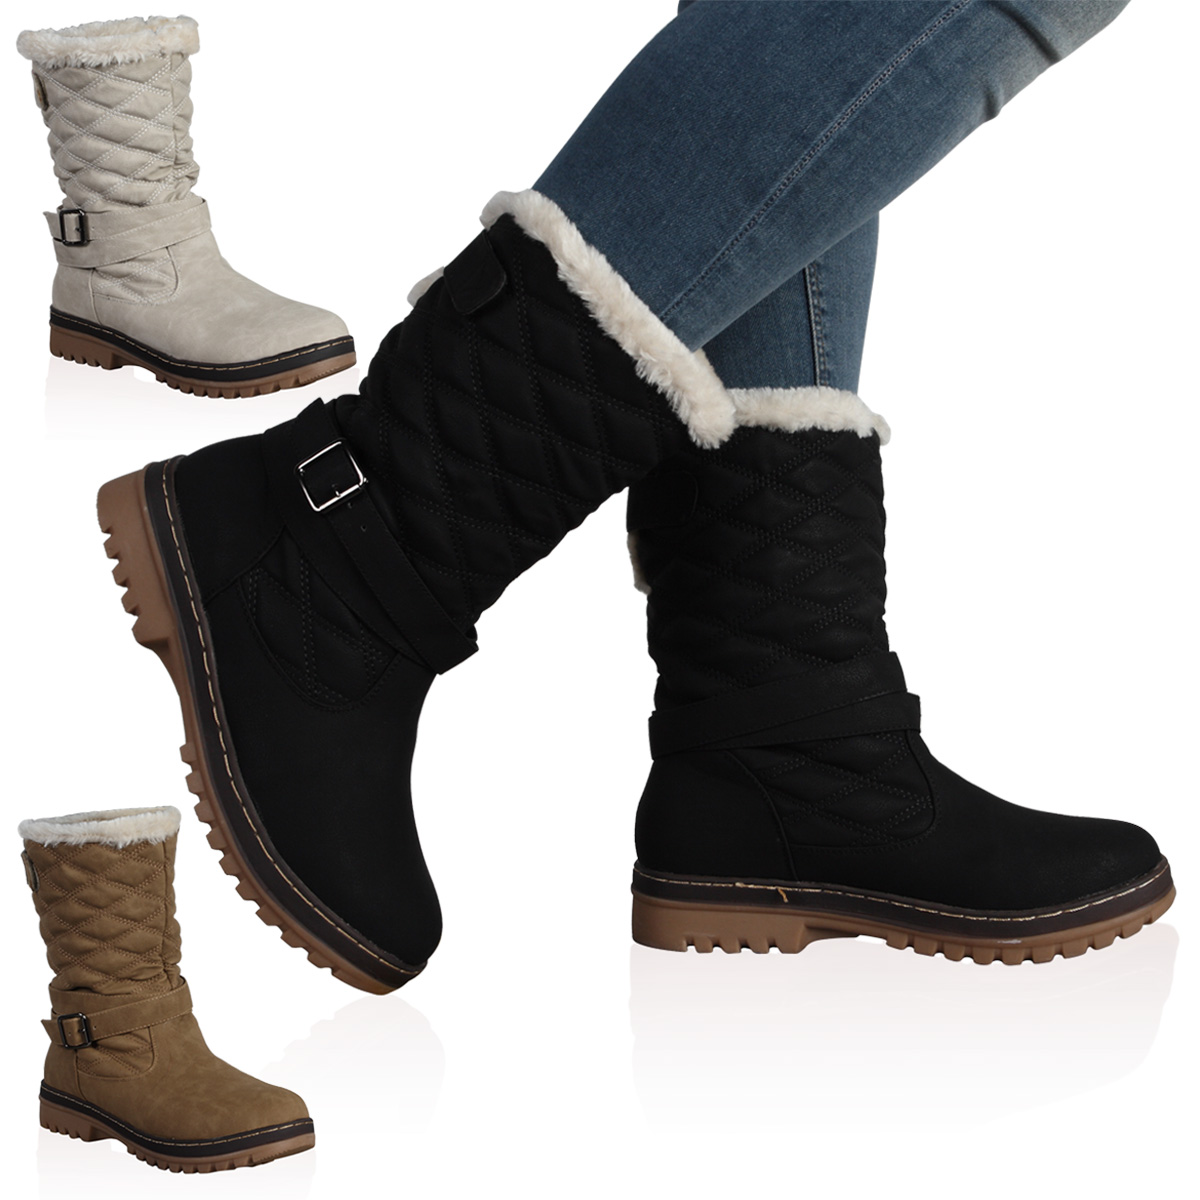 Winter Snow Boots Women Dh67Wedt